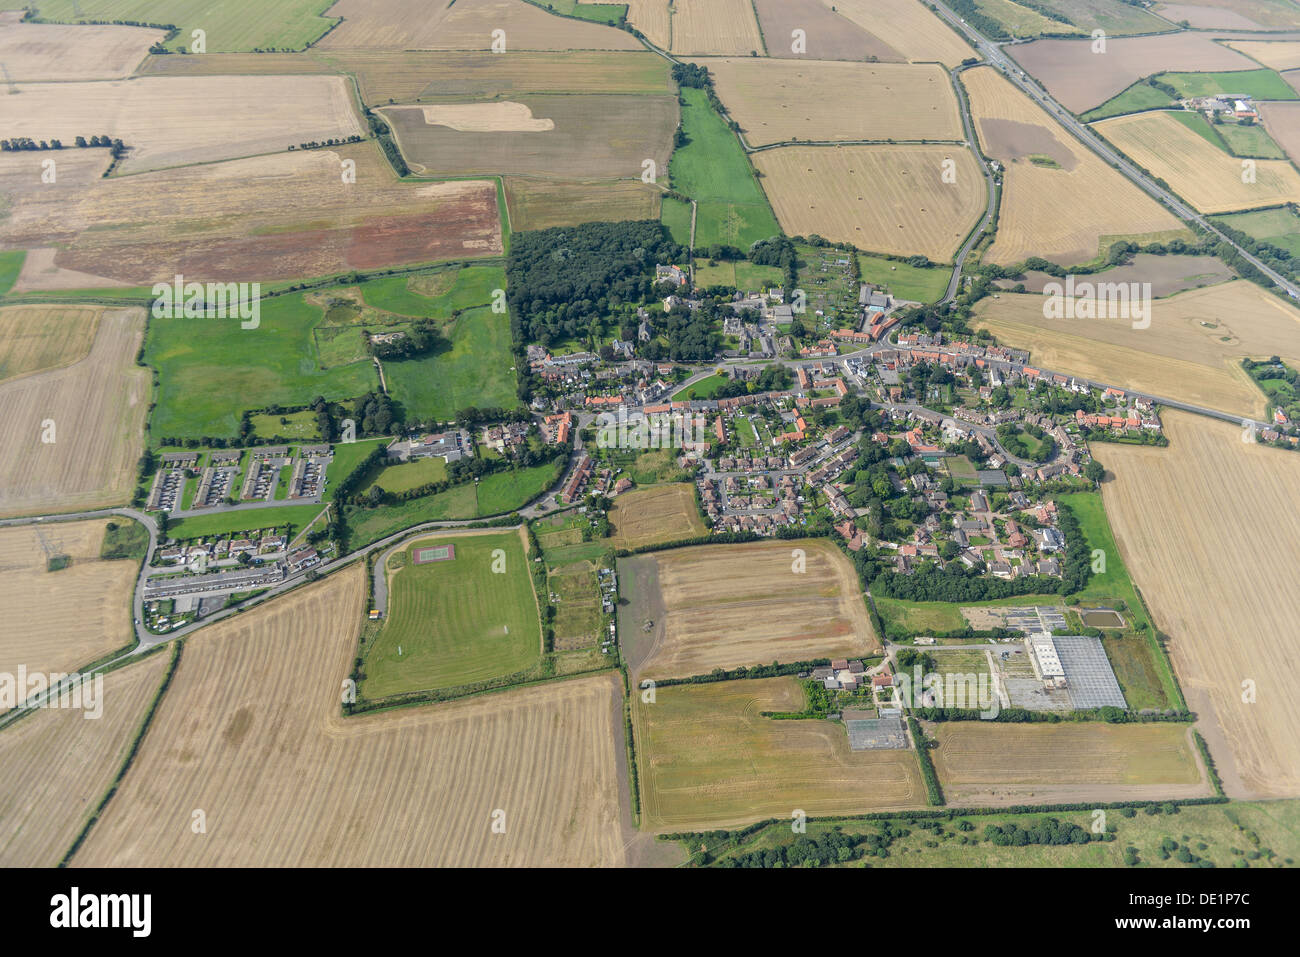 Aerial photograph of Greatham Teeside - Stock Image